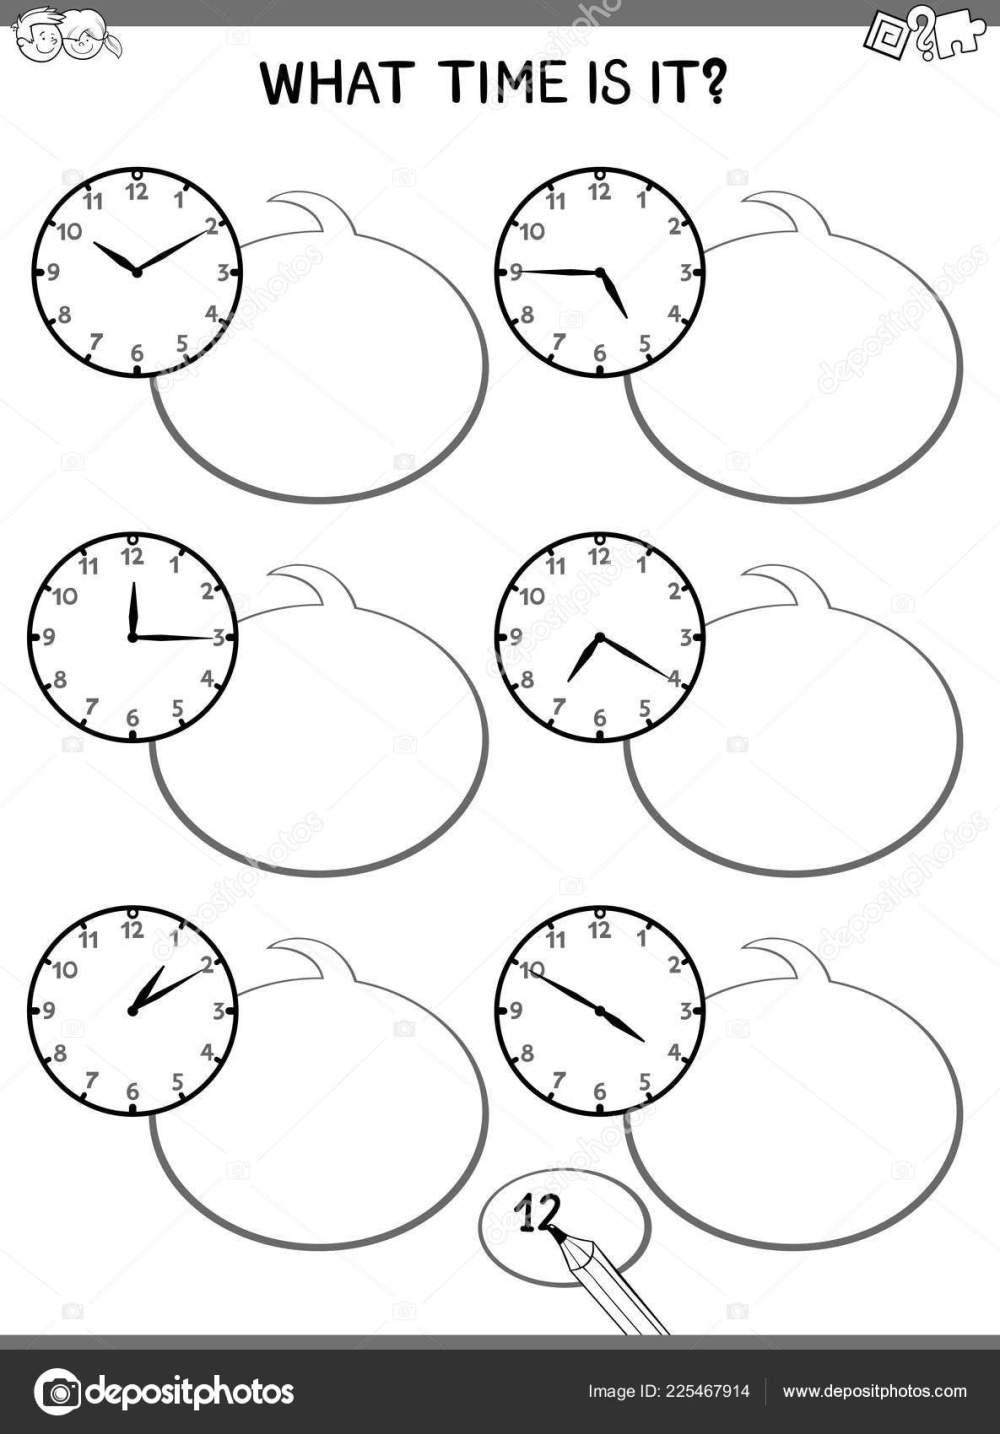 medium resolution of black and white cartoon illustrations of telling time educational game with clock face for elementary age children stock illustration